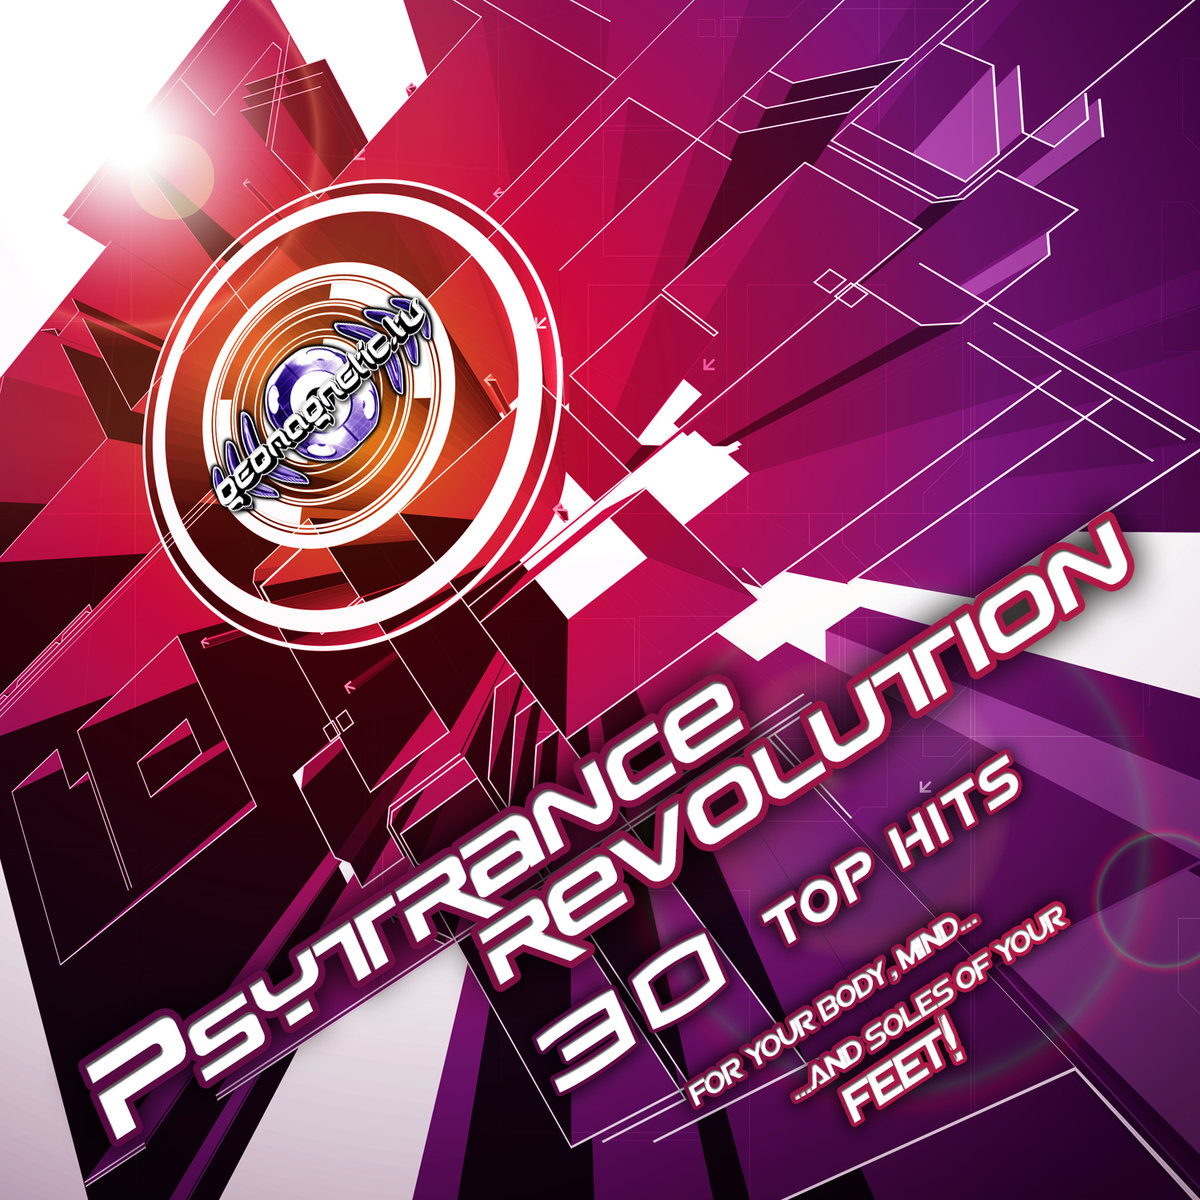 Biocycle - Golden Voltage @ 'Various Artists - Psytrance Revolution (30 Top Hits)' album (electronic, goa)